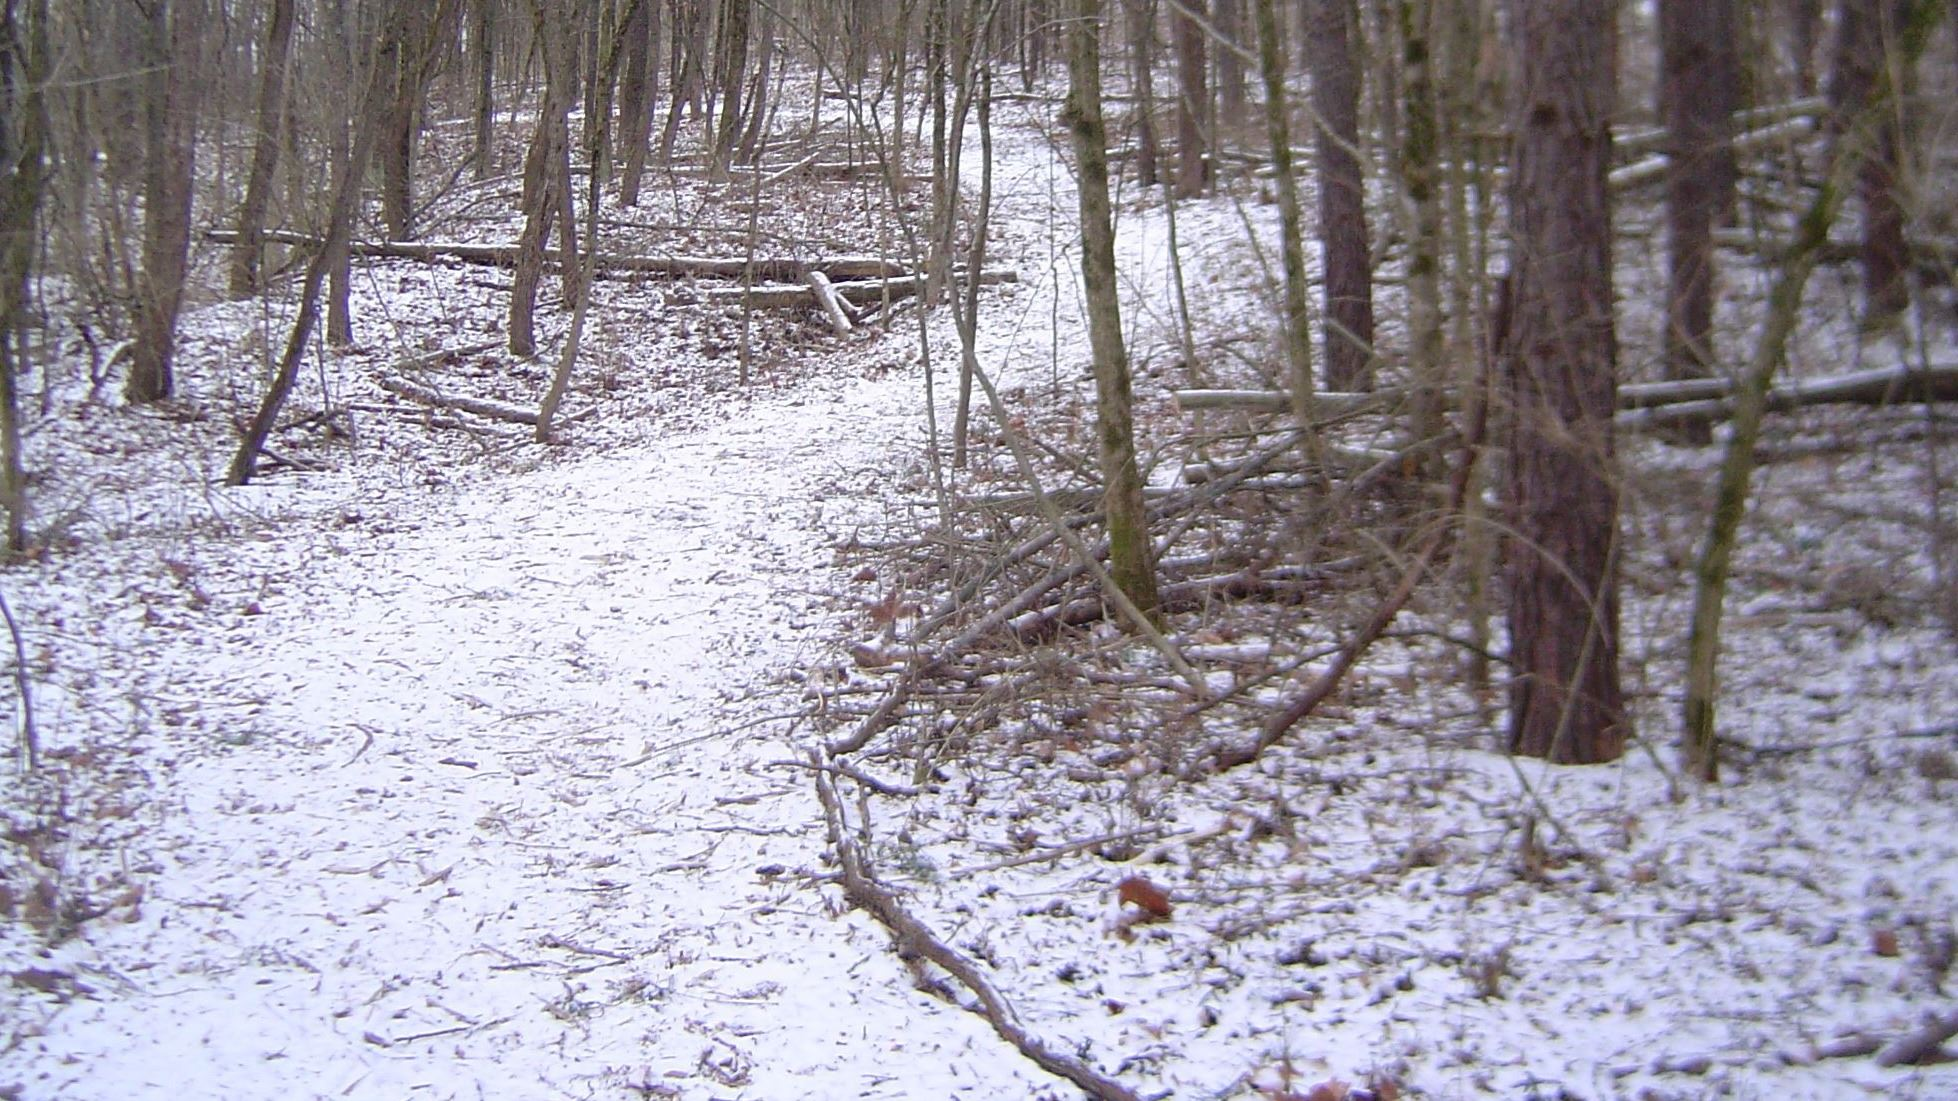 Bittersweet Woods Jan 2010